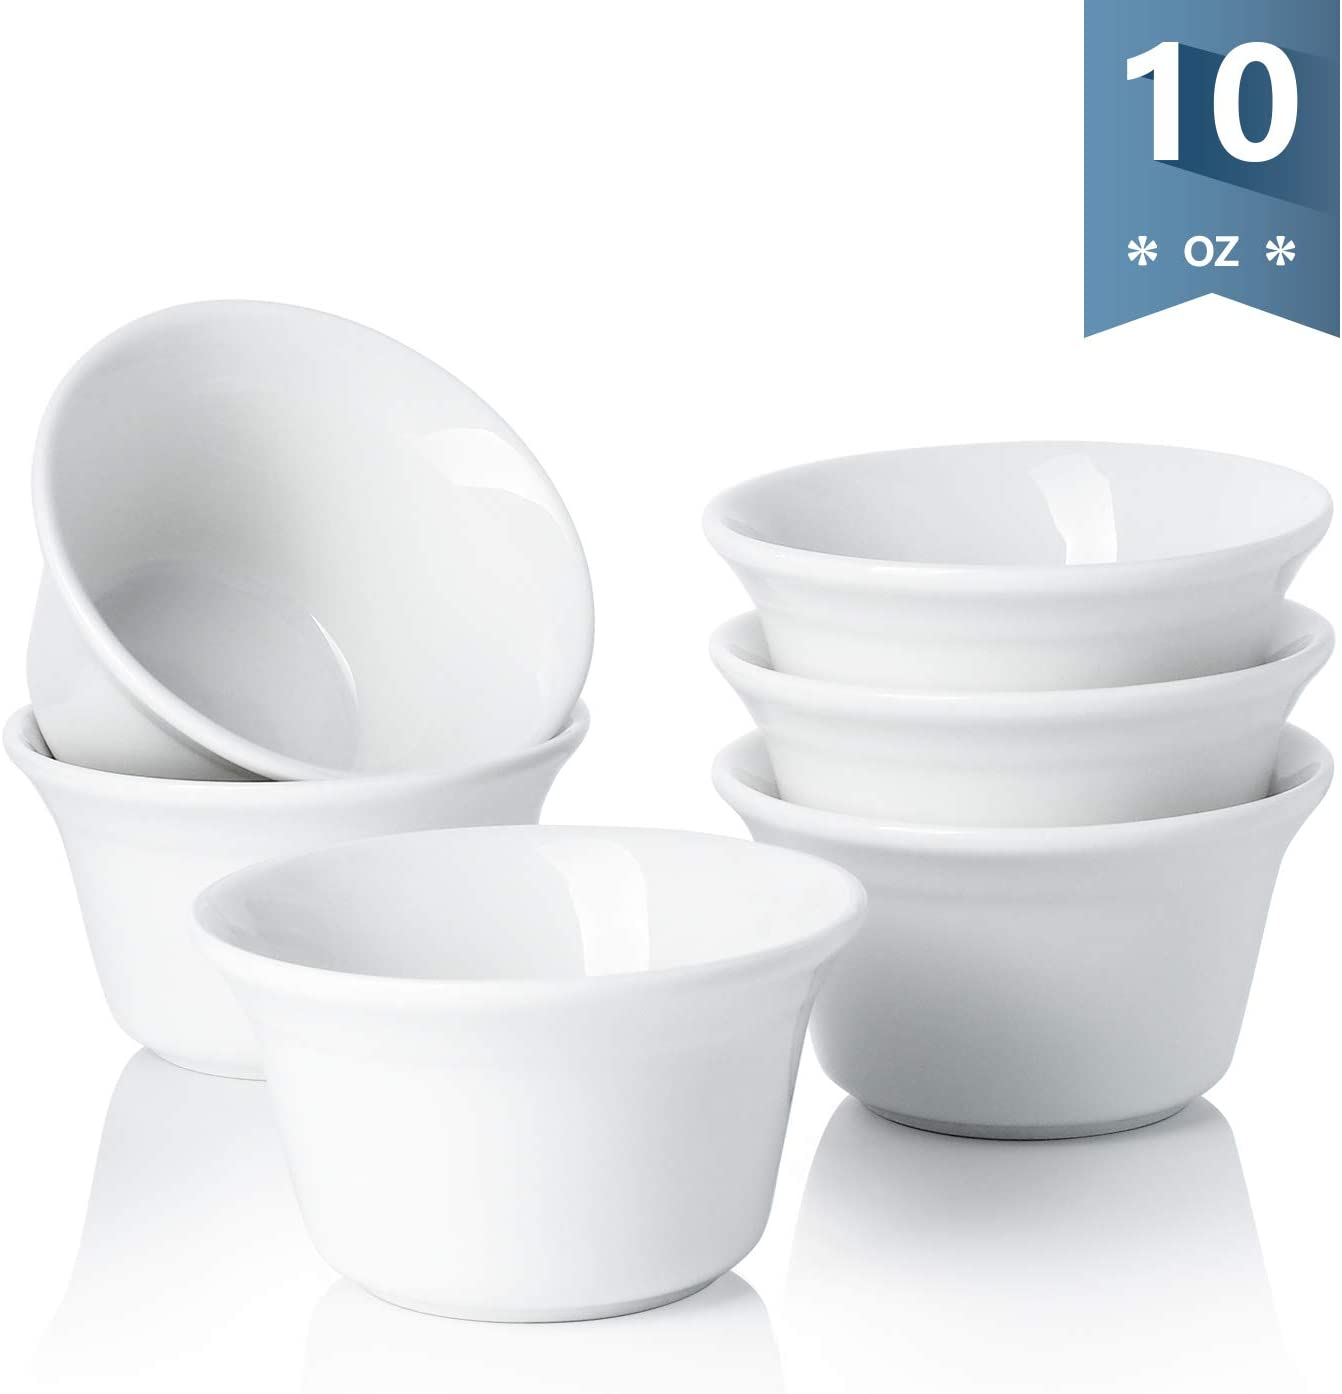 Sweese 512.001 Porcelain Souffle Dish 10 Ounce Oven Safe Ramekins, Set of 6, White